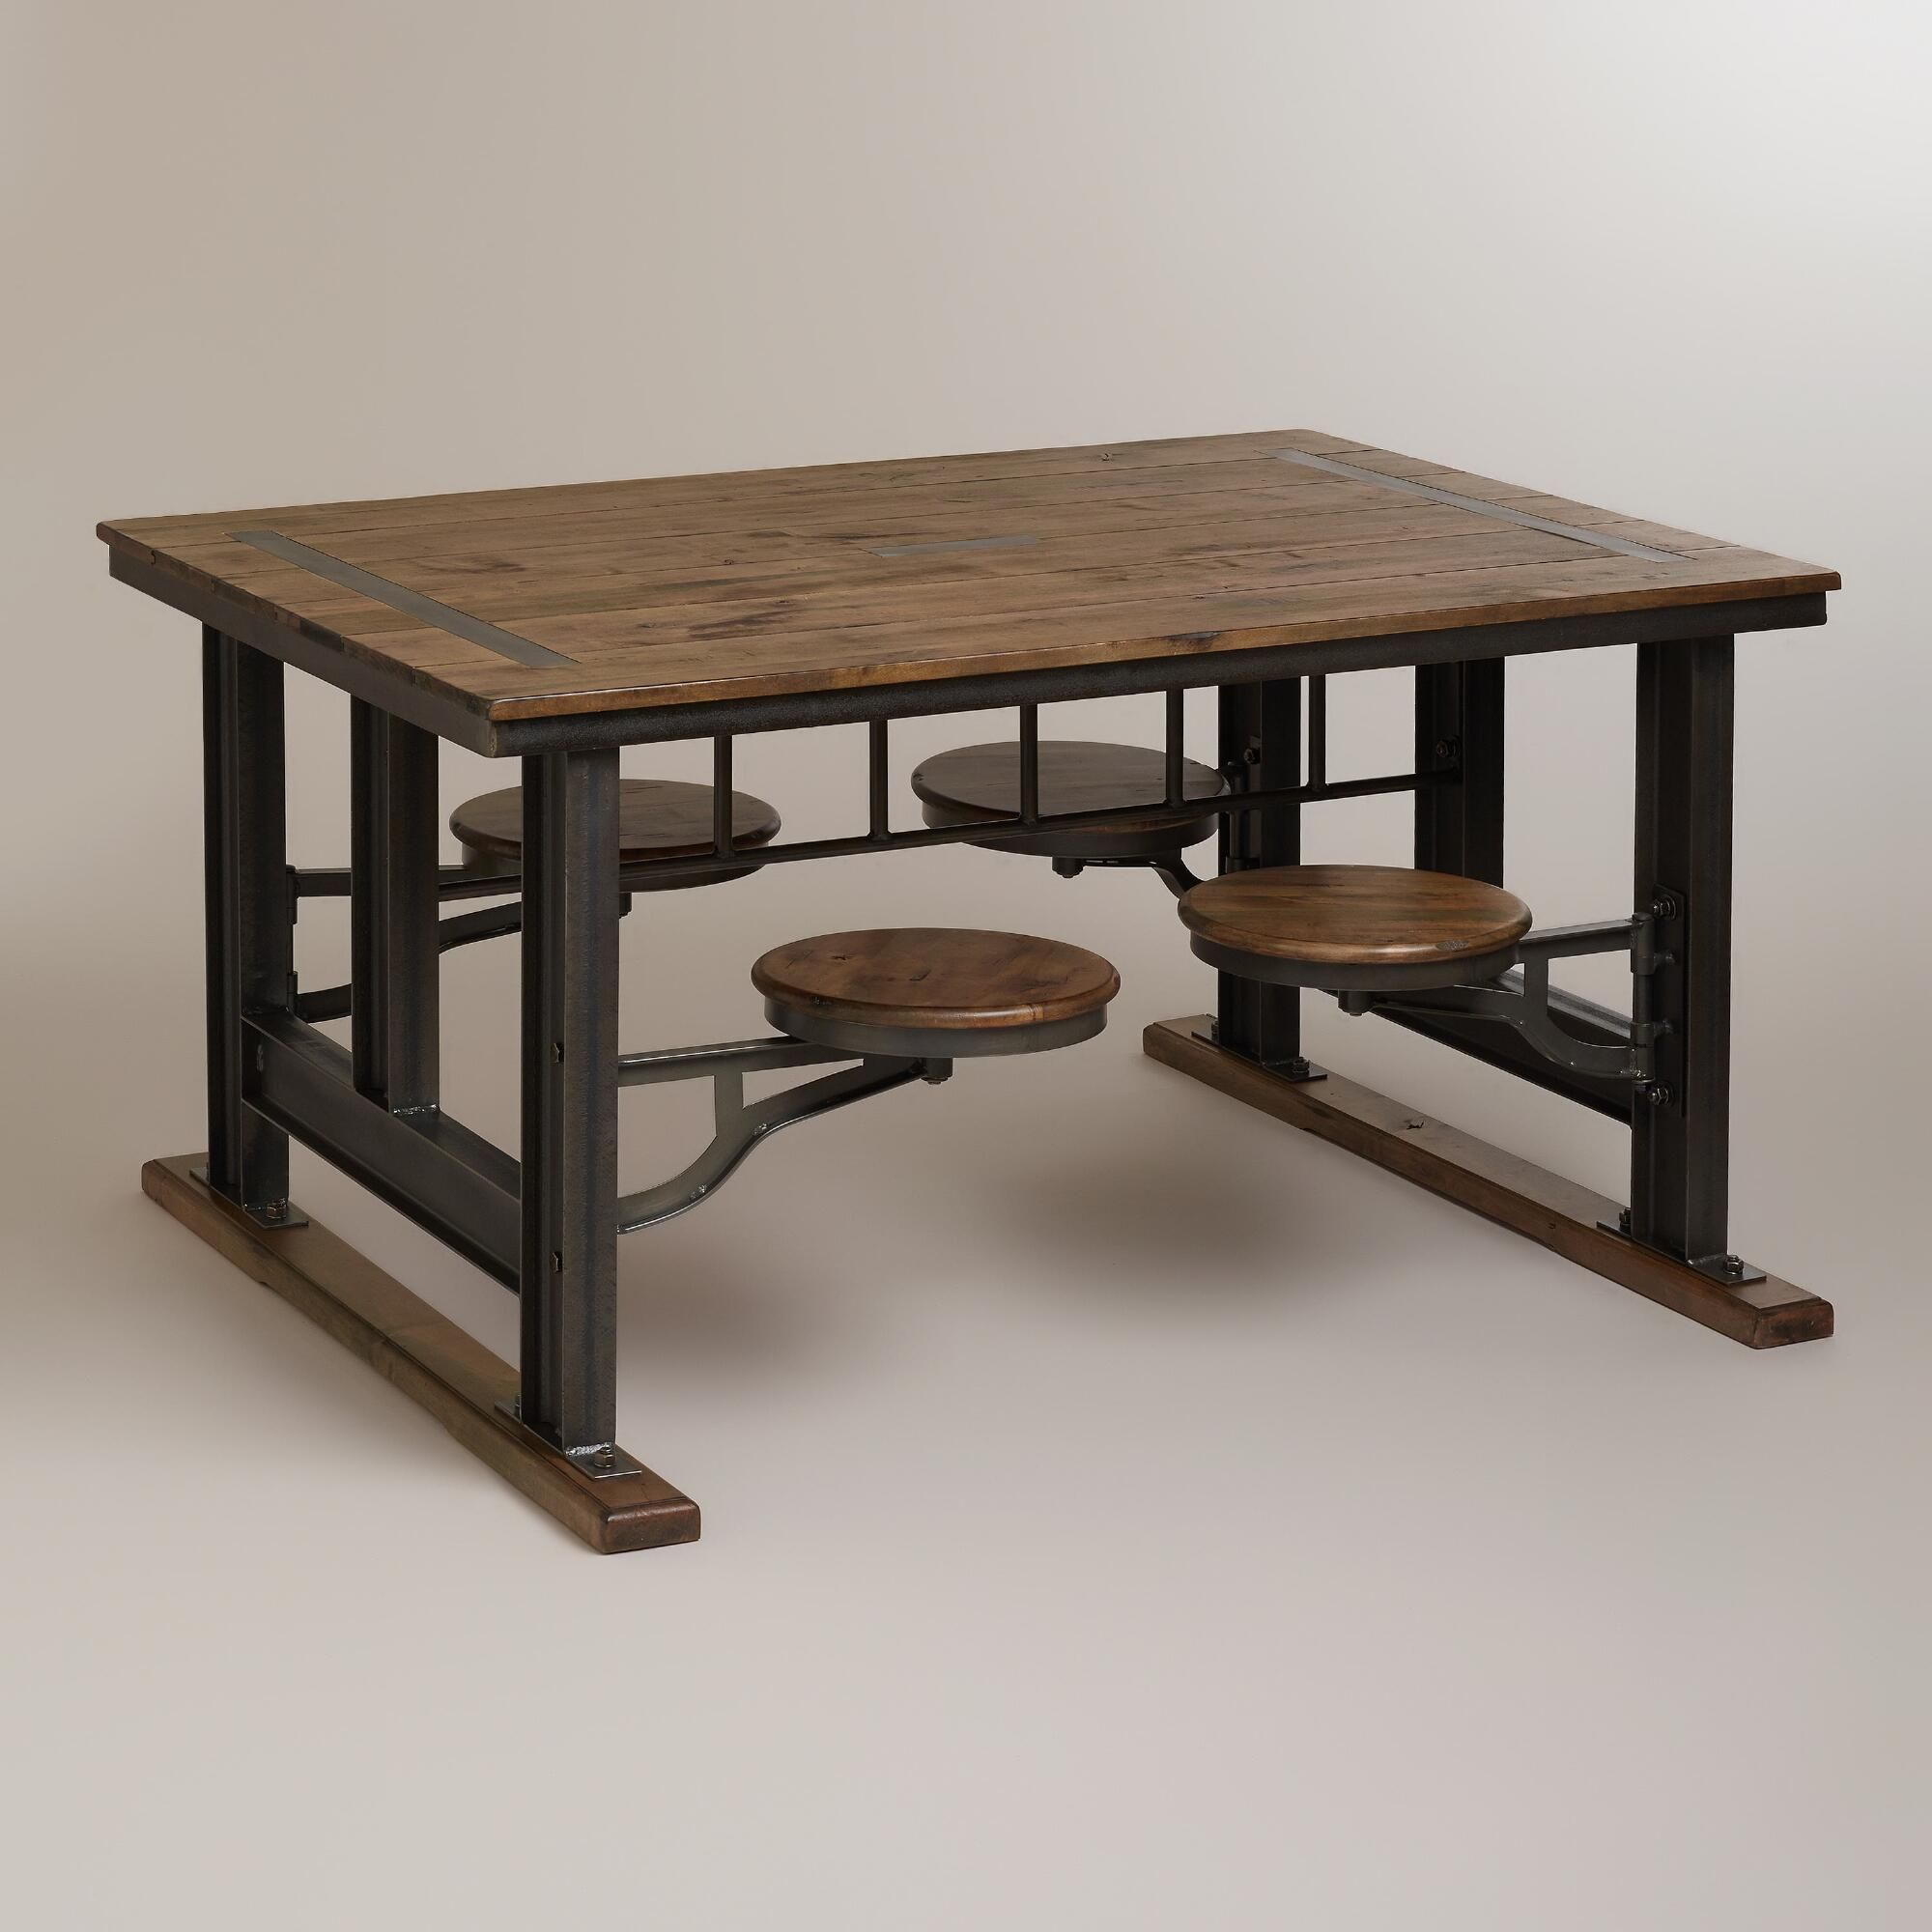 Outdoor school lunch table - Galvin Cafeteria Table